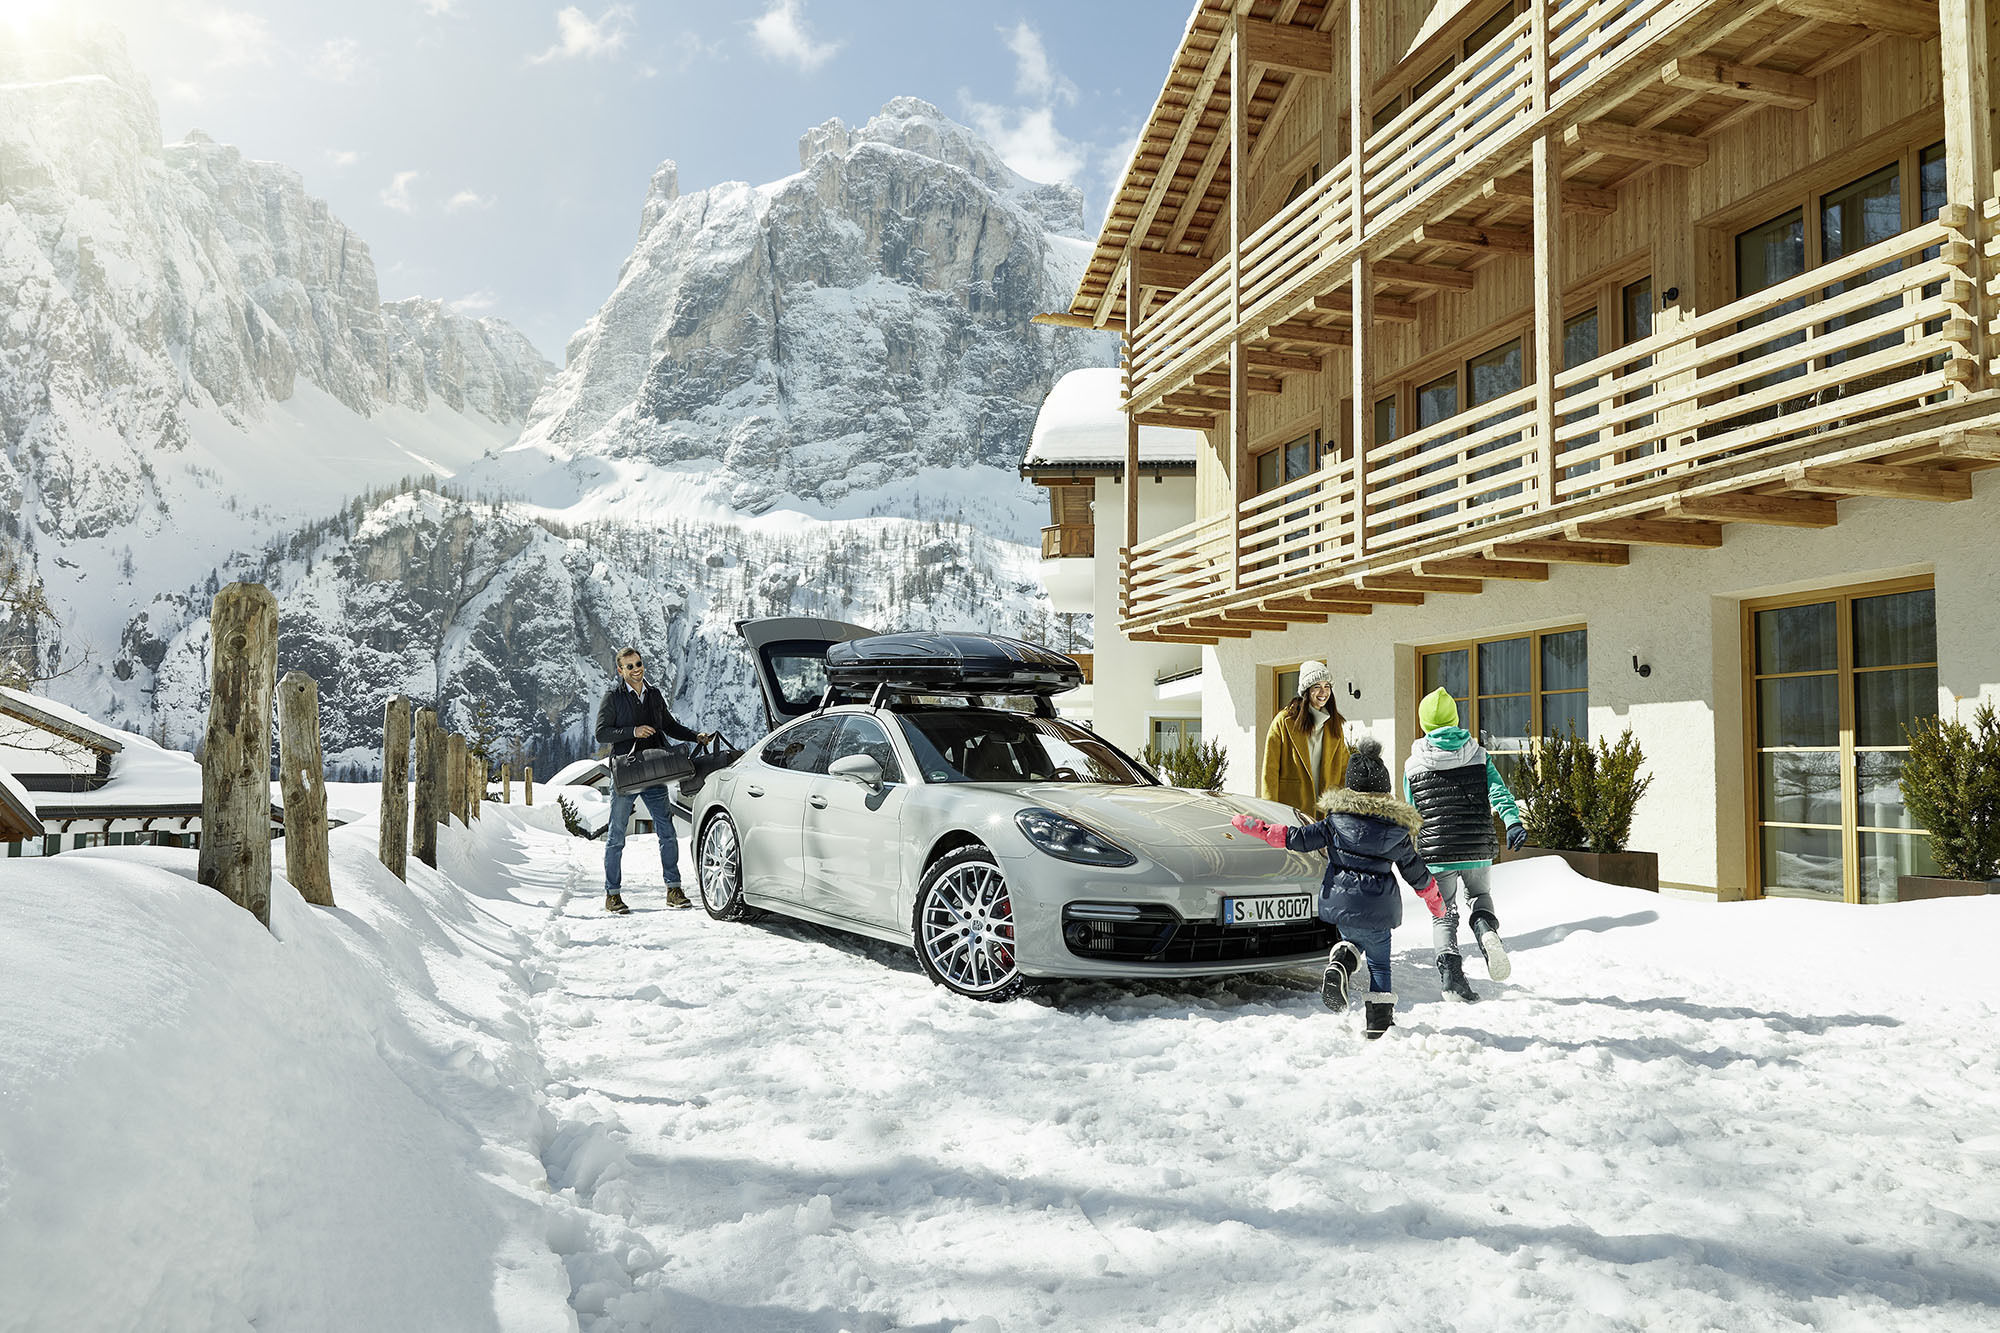 Porsche Winter Tequipment by Stephan Romer